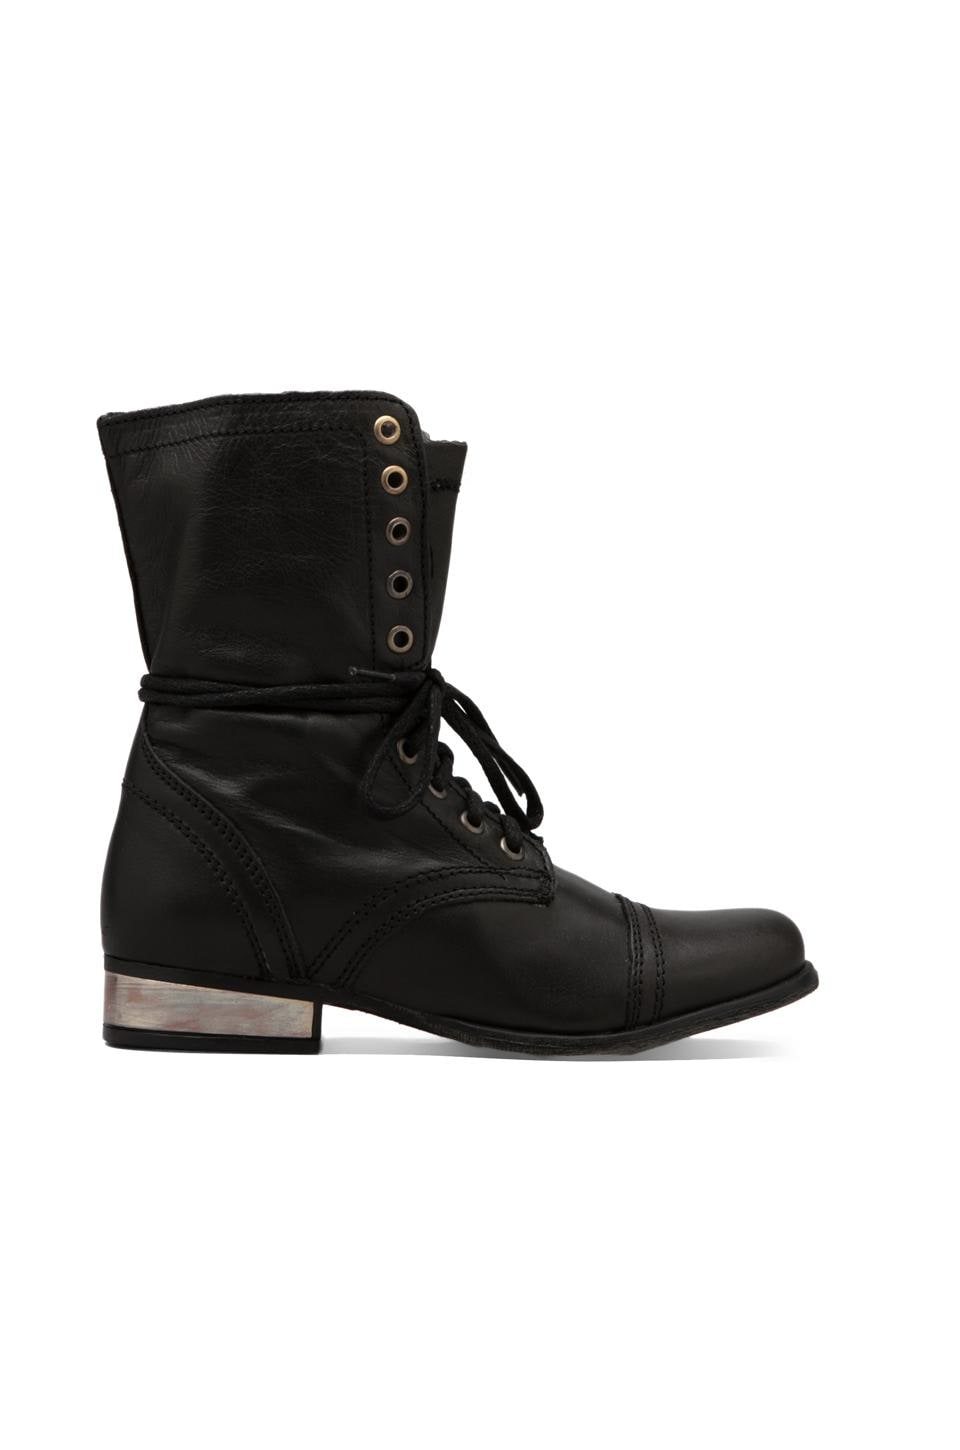 Steve Madden Troopale Boot in Black/Gold